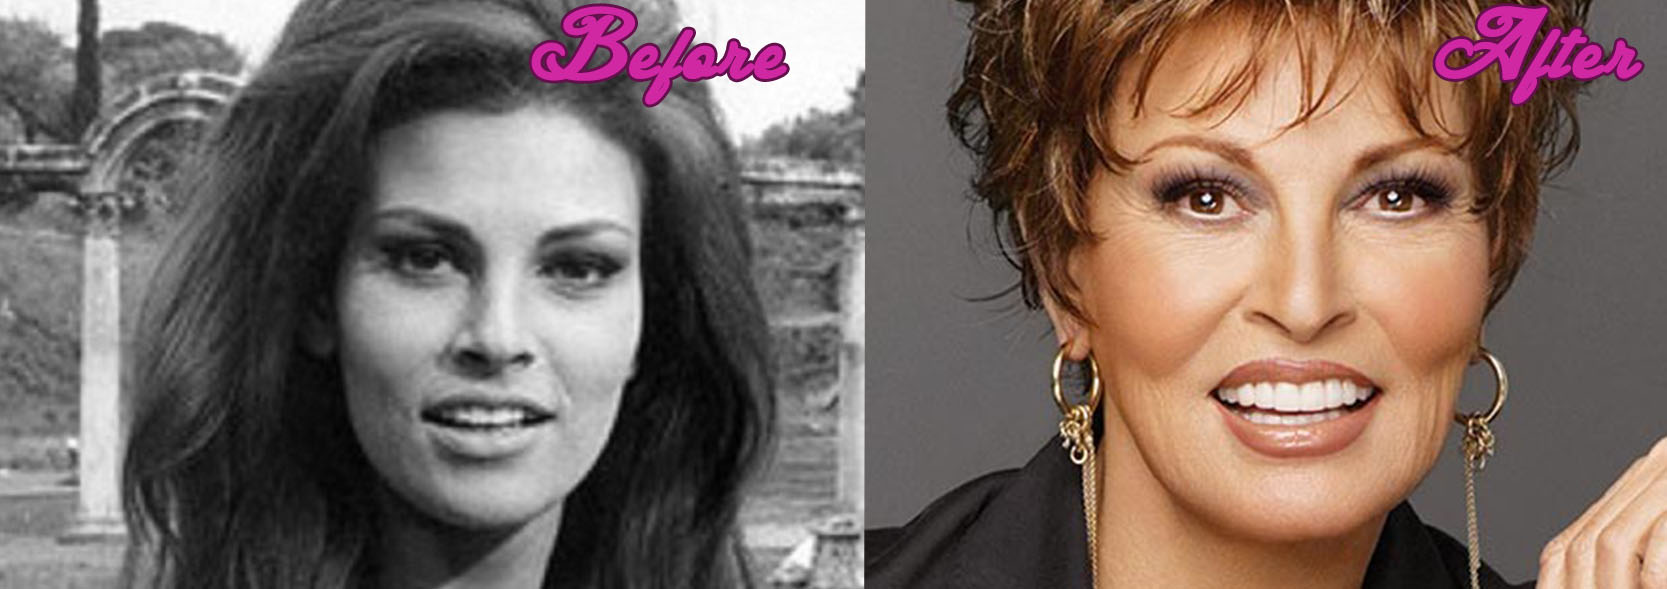 Raquel Welch Plastic Surgery Pics